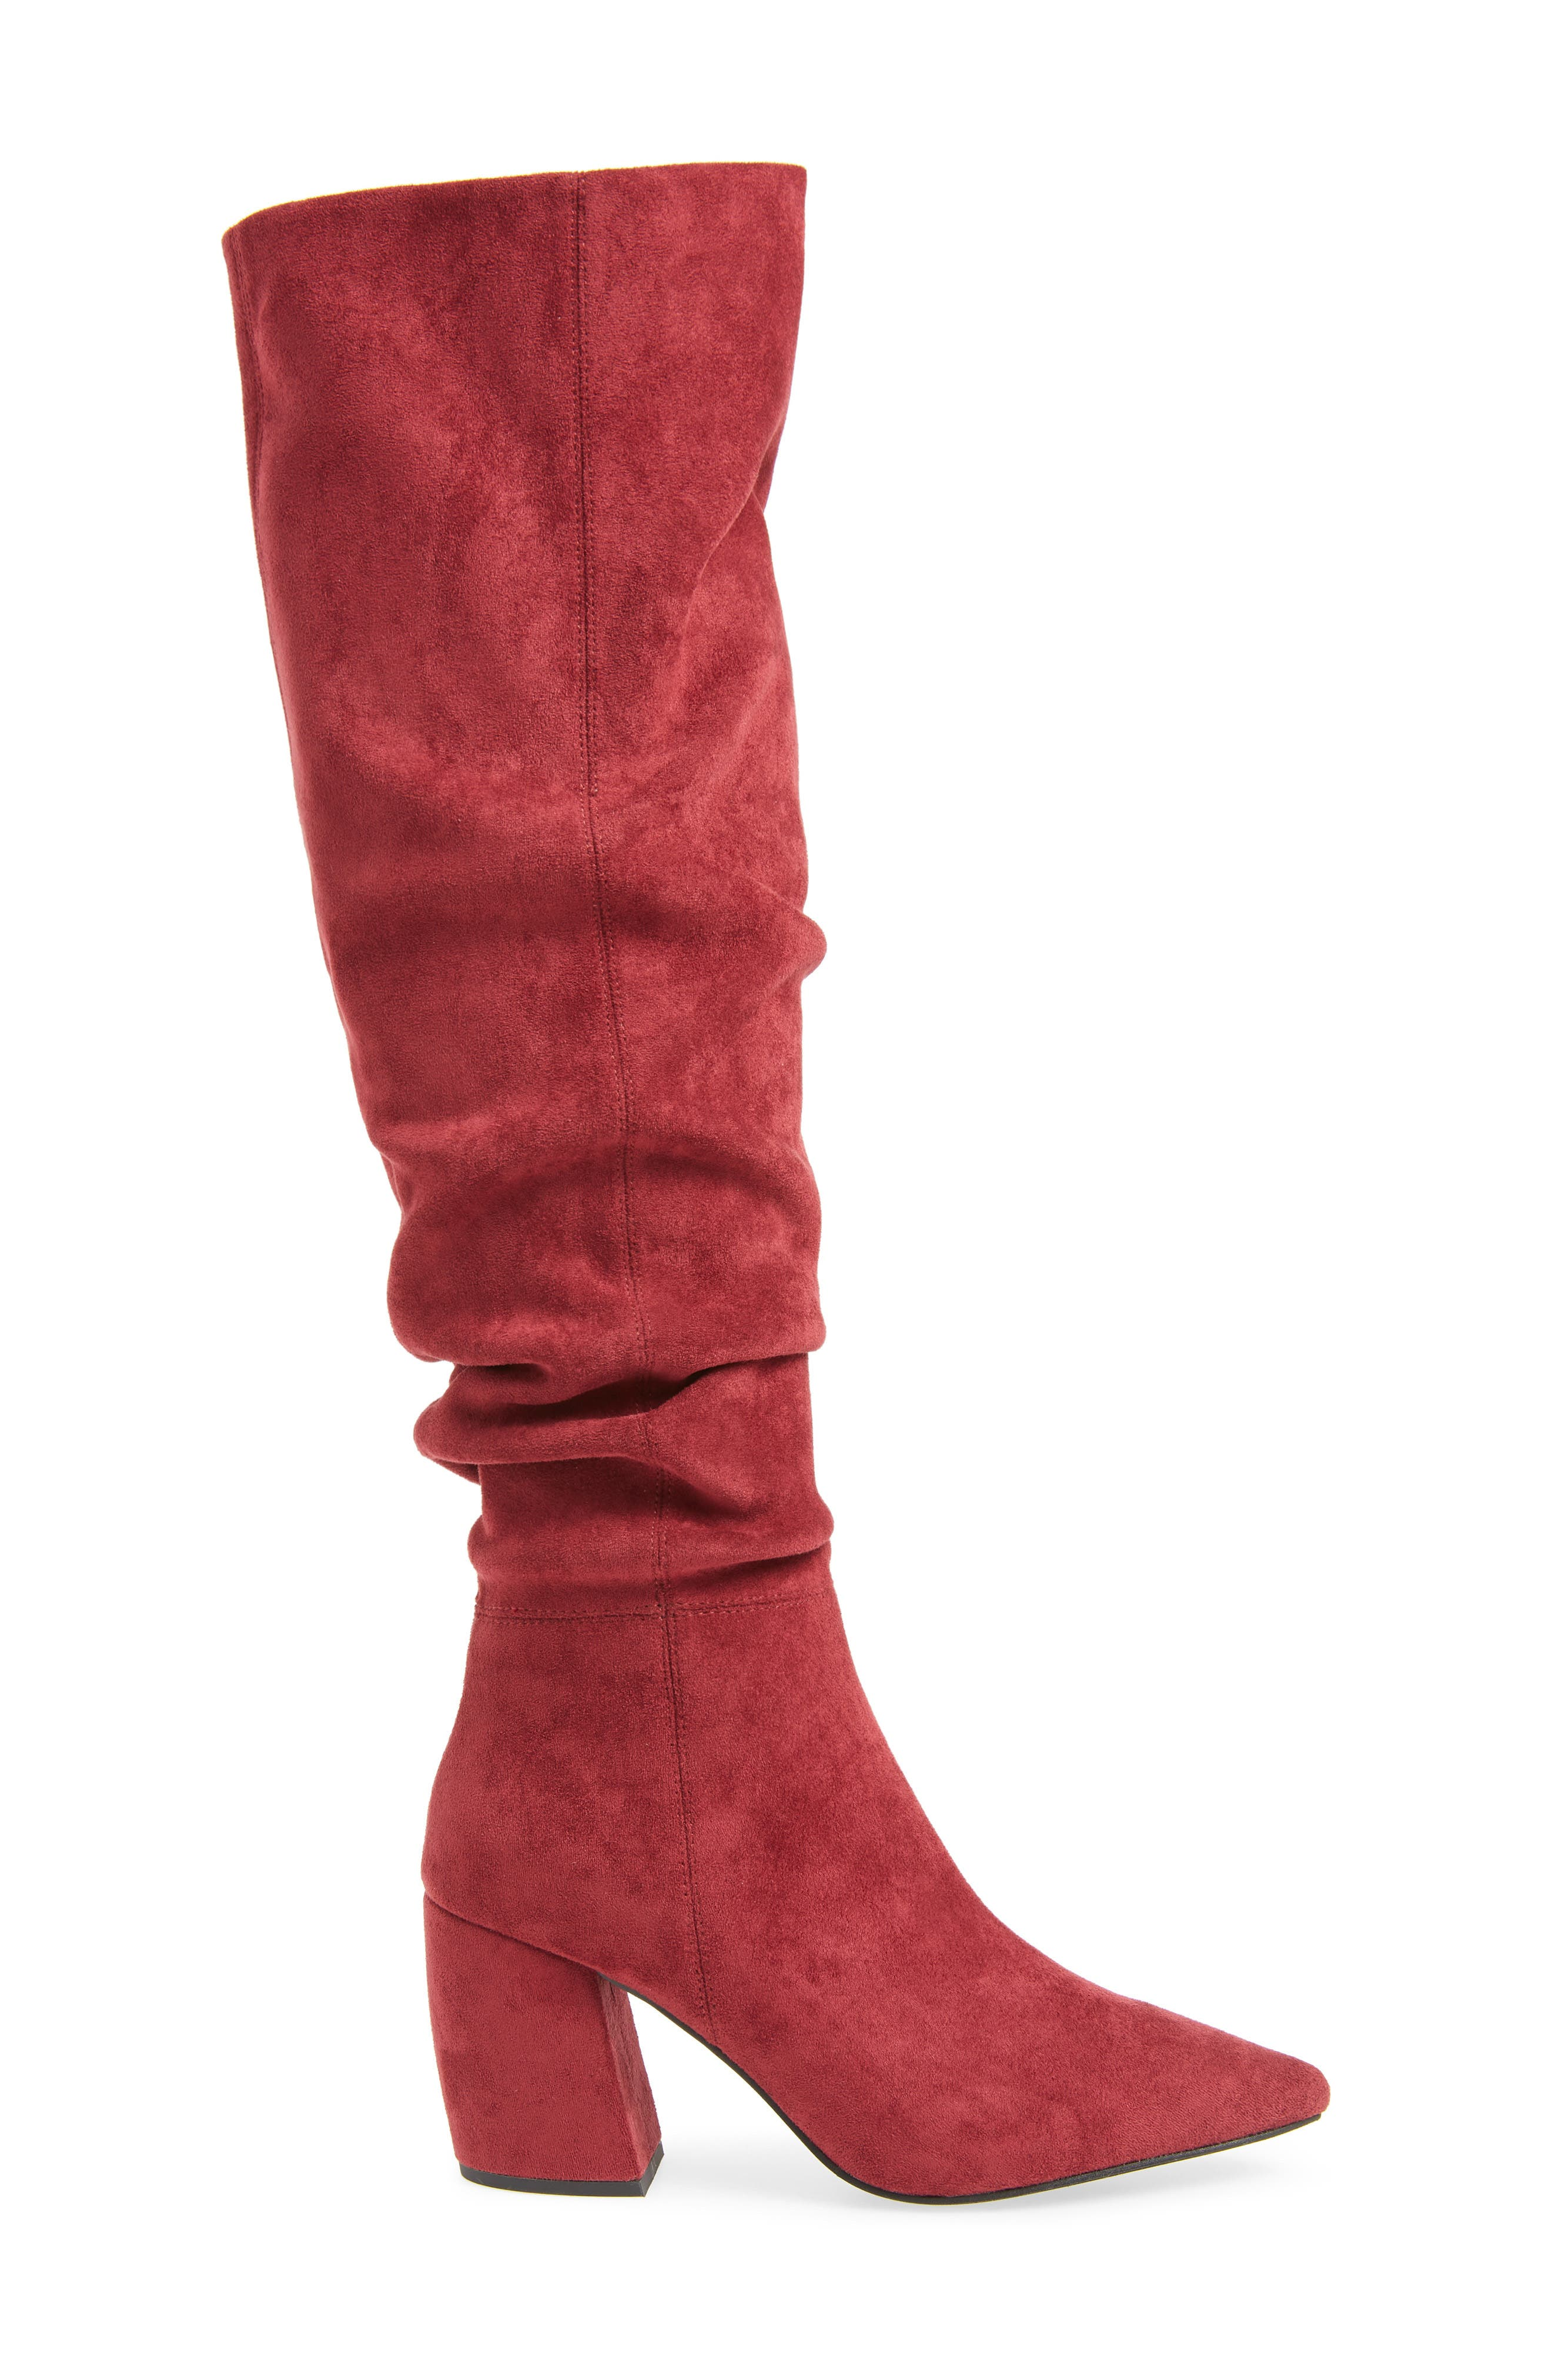 Final Slouch Over the Knee Boot,                             Alternate thumbnail 3, color,                             WINE SUEDE